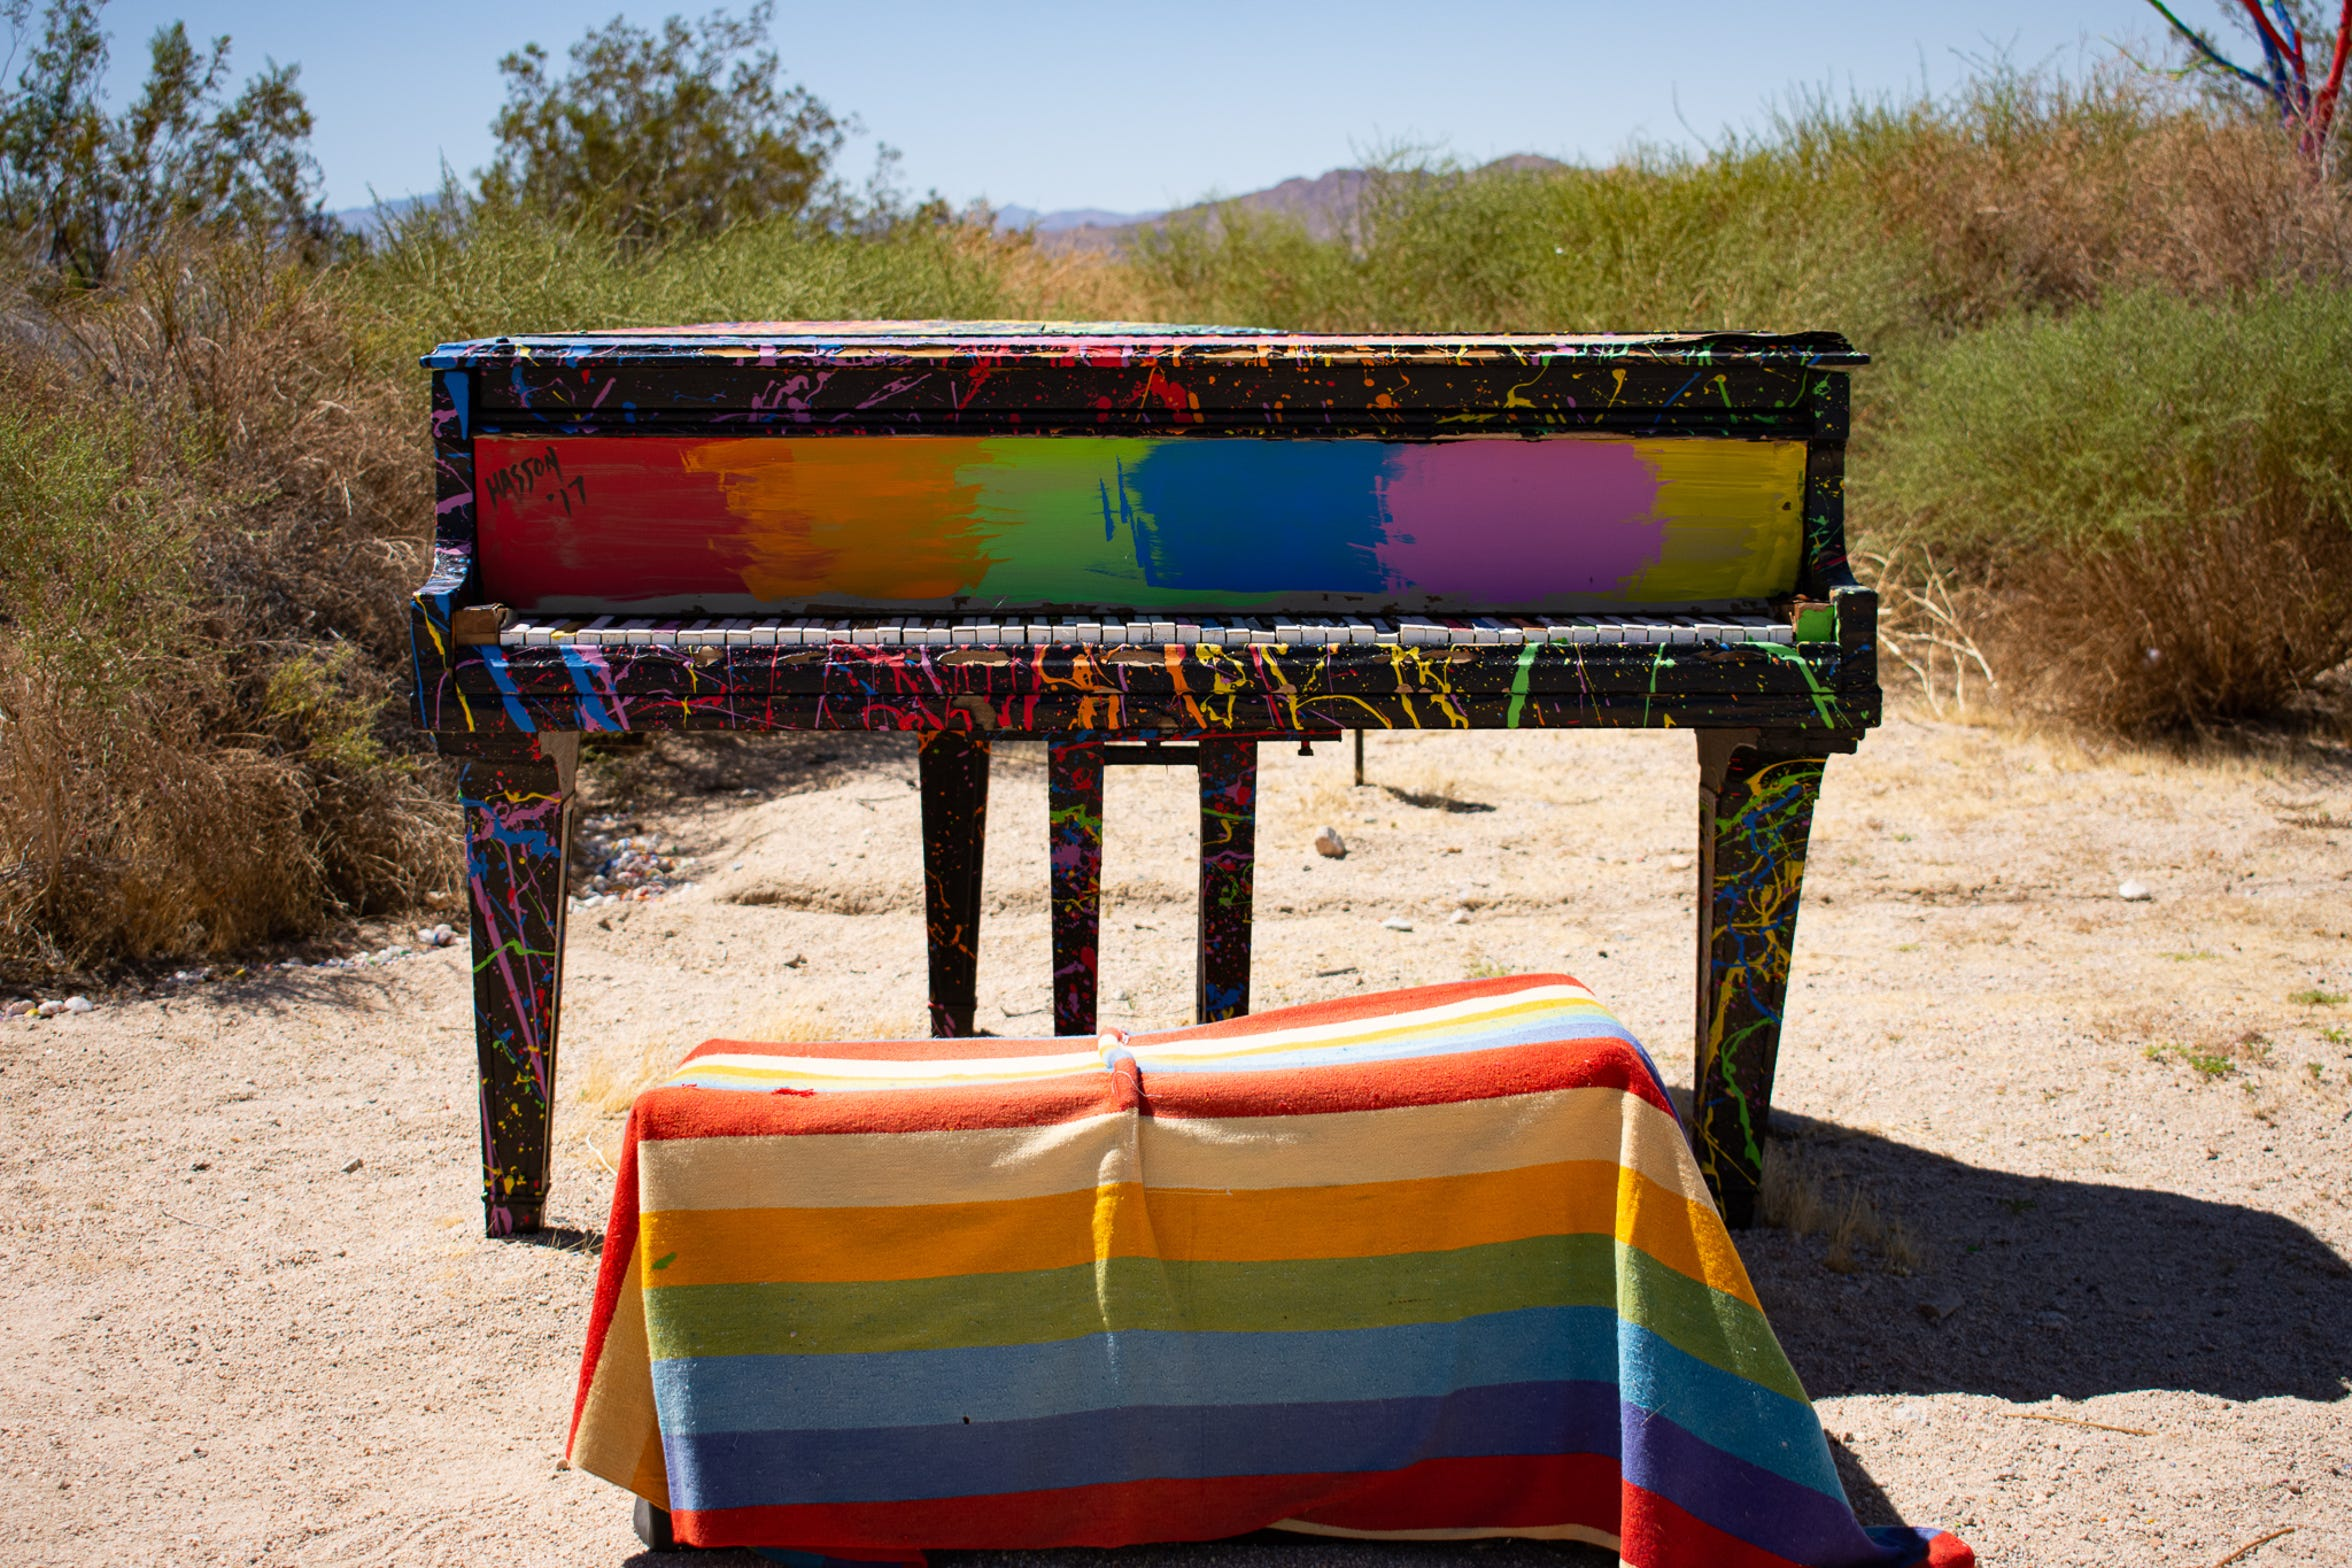 A piano painted by Patrick Hasson at Rancho De Colores on Aug. 20, 2019.